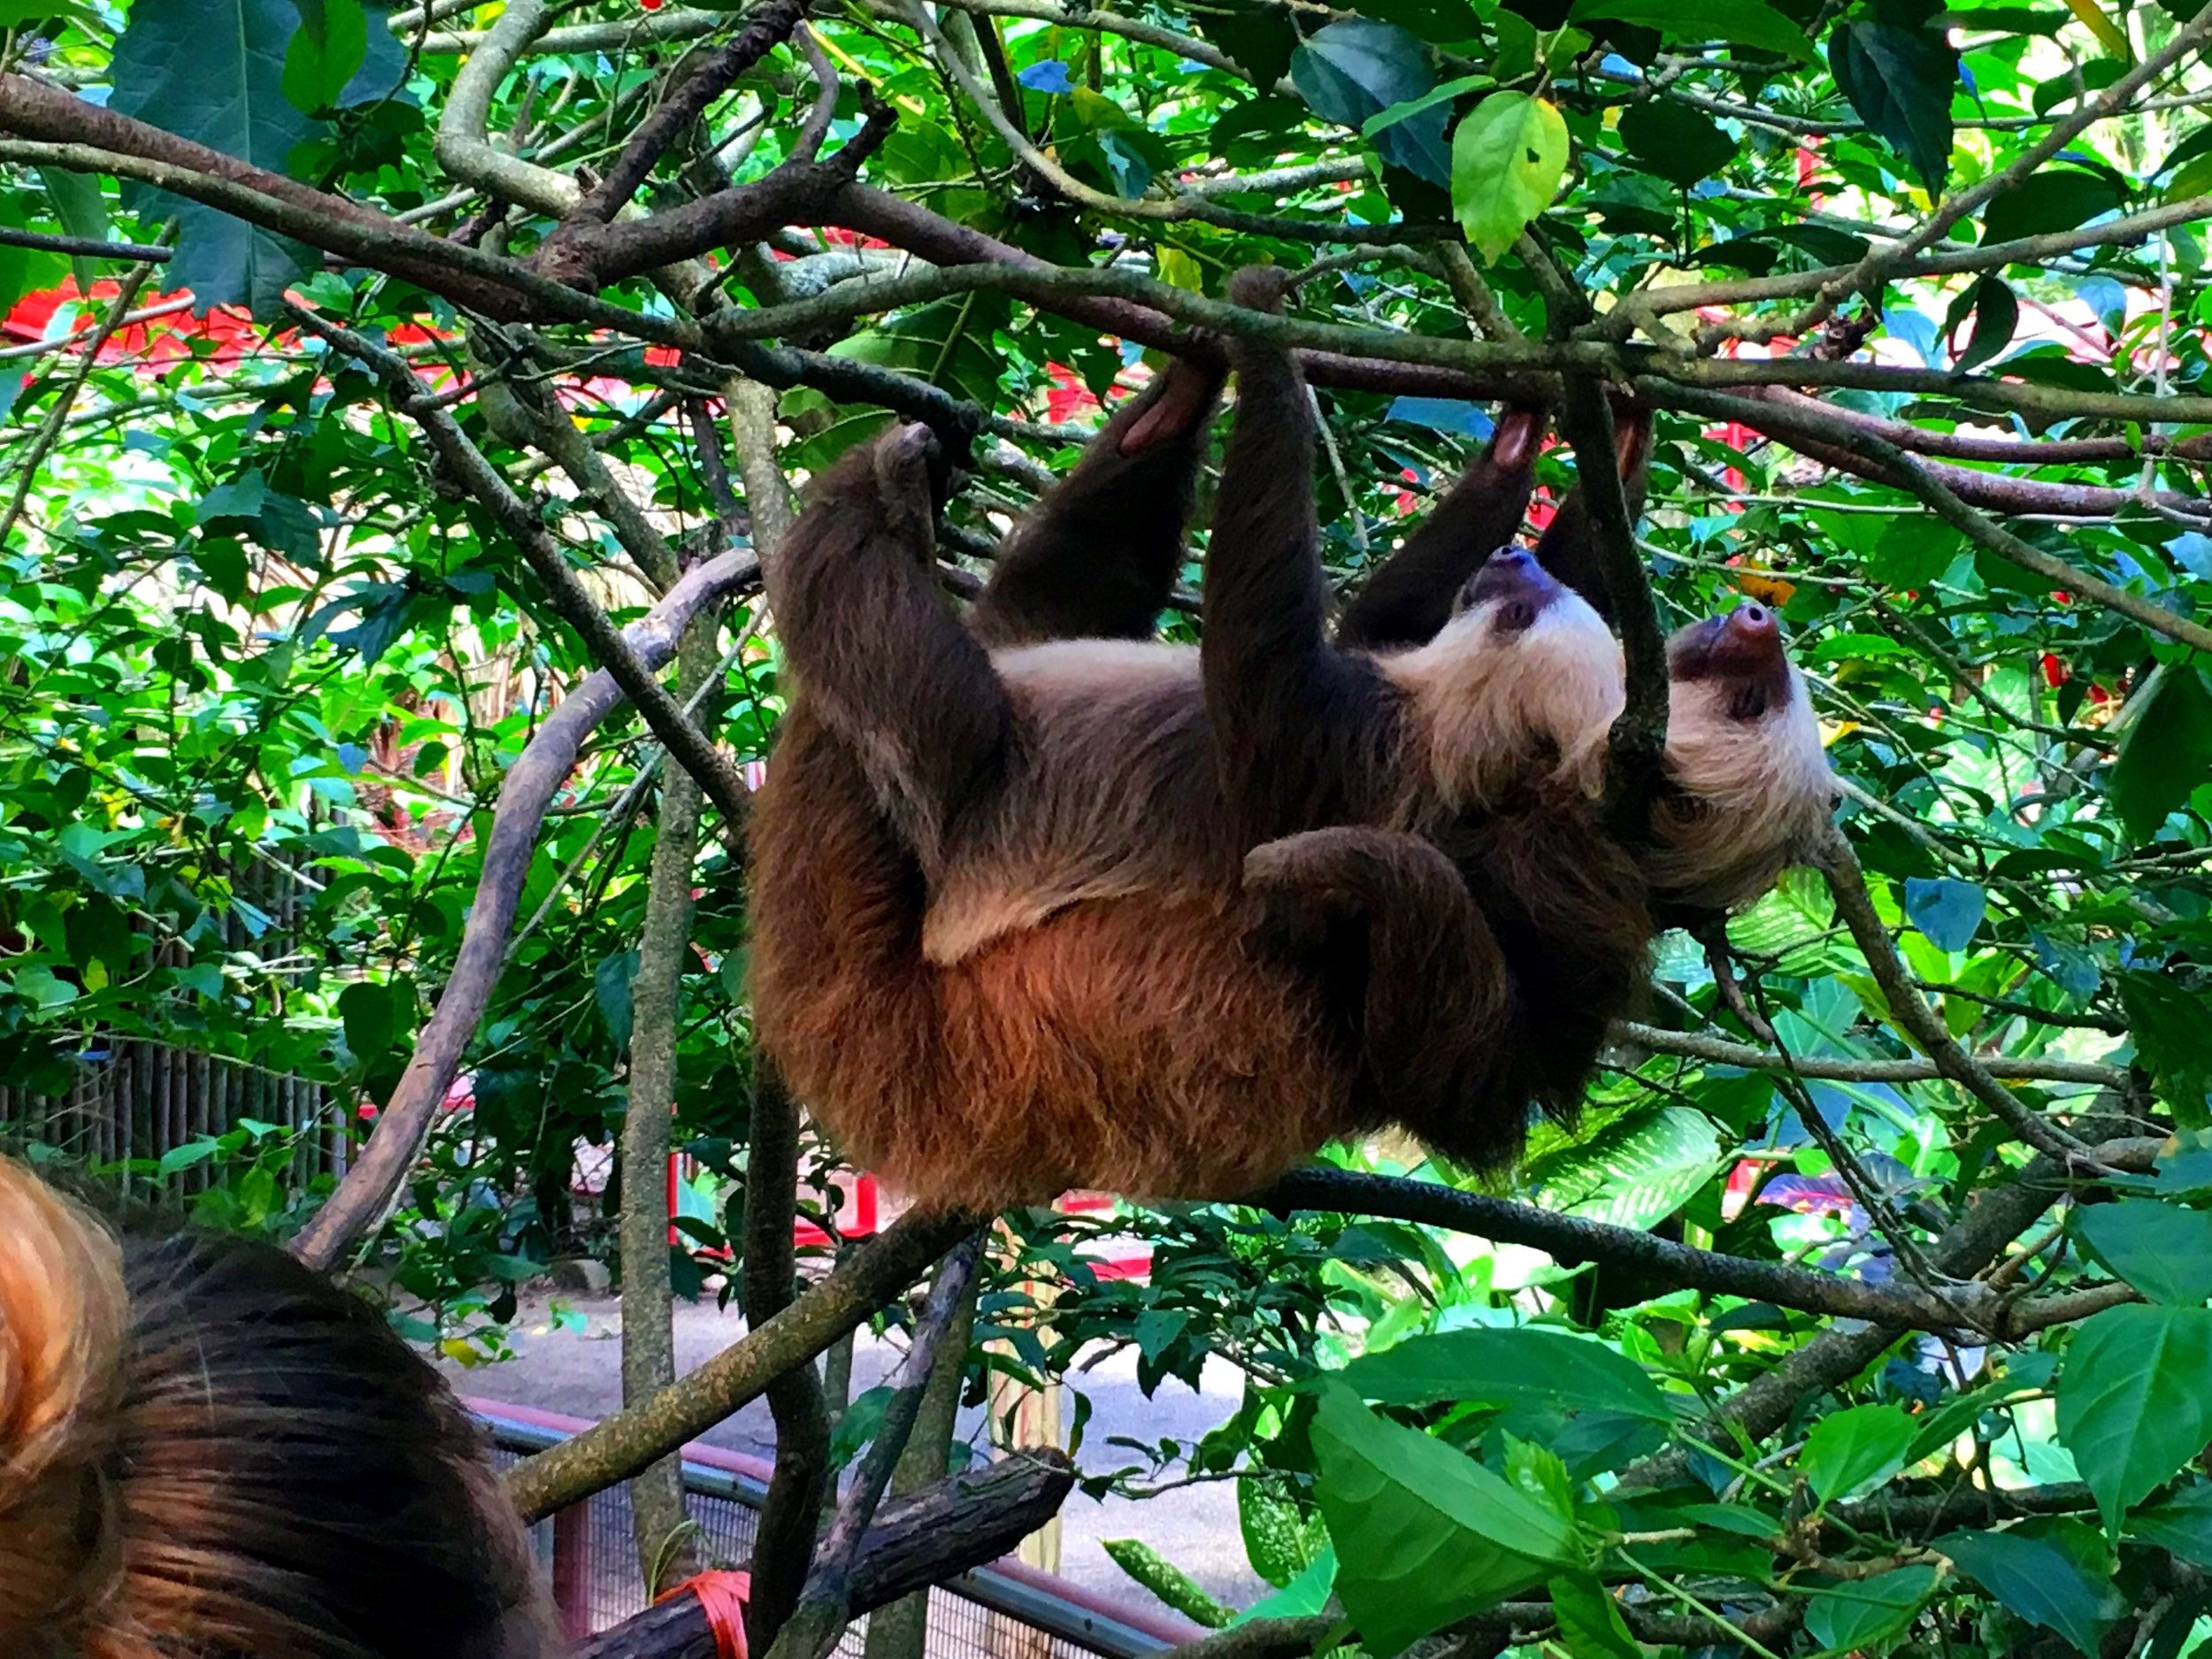 MAMA & BABY SLOTHS AT THE JAGUAR SANCTUARY IN COSTA RICA